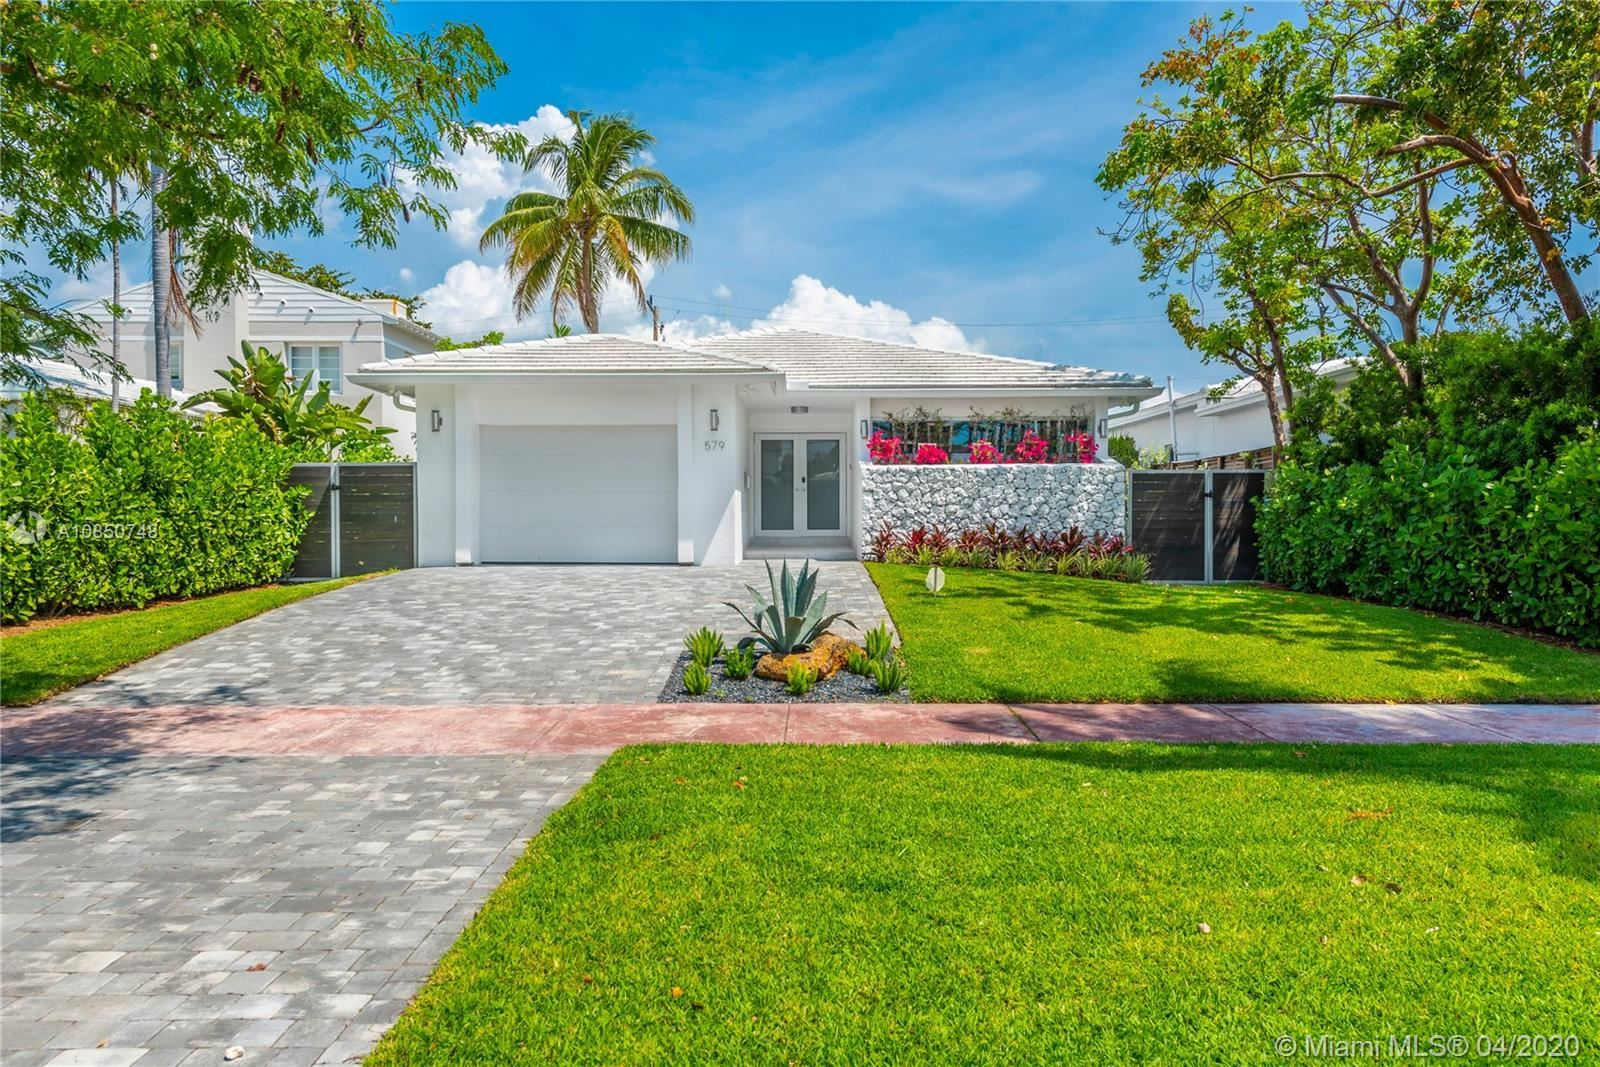 579 Lakeview Dr, Miami Beach, FL 33140 - #: A10850748